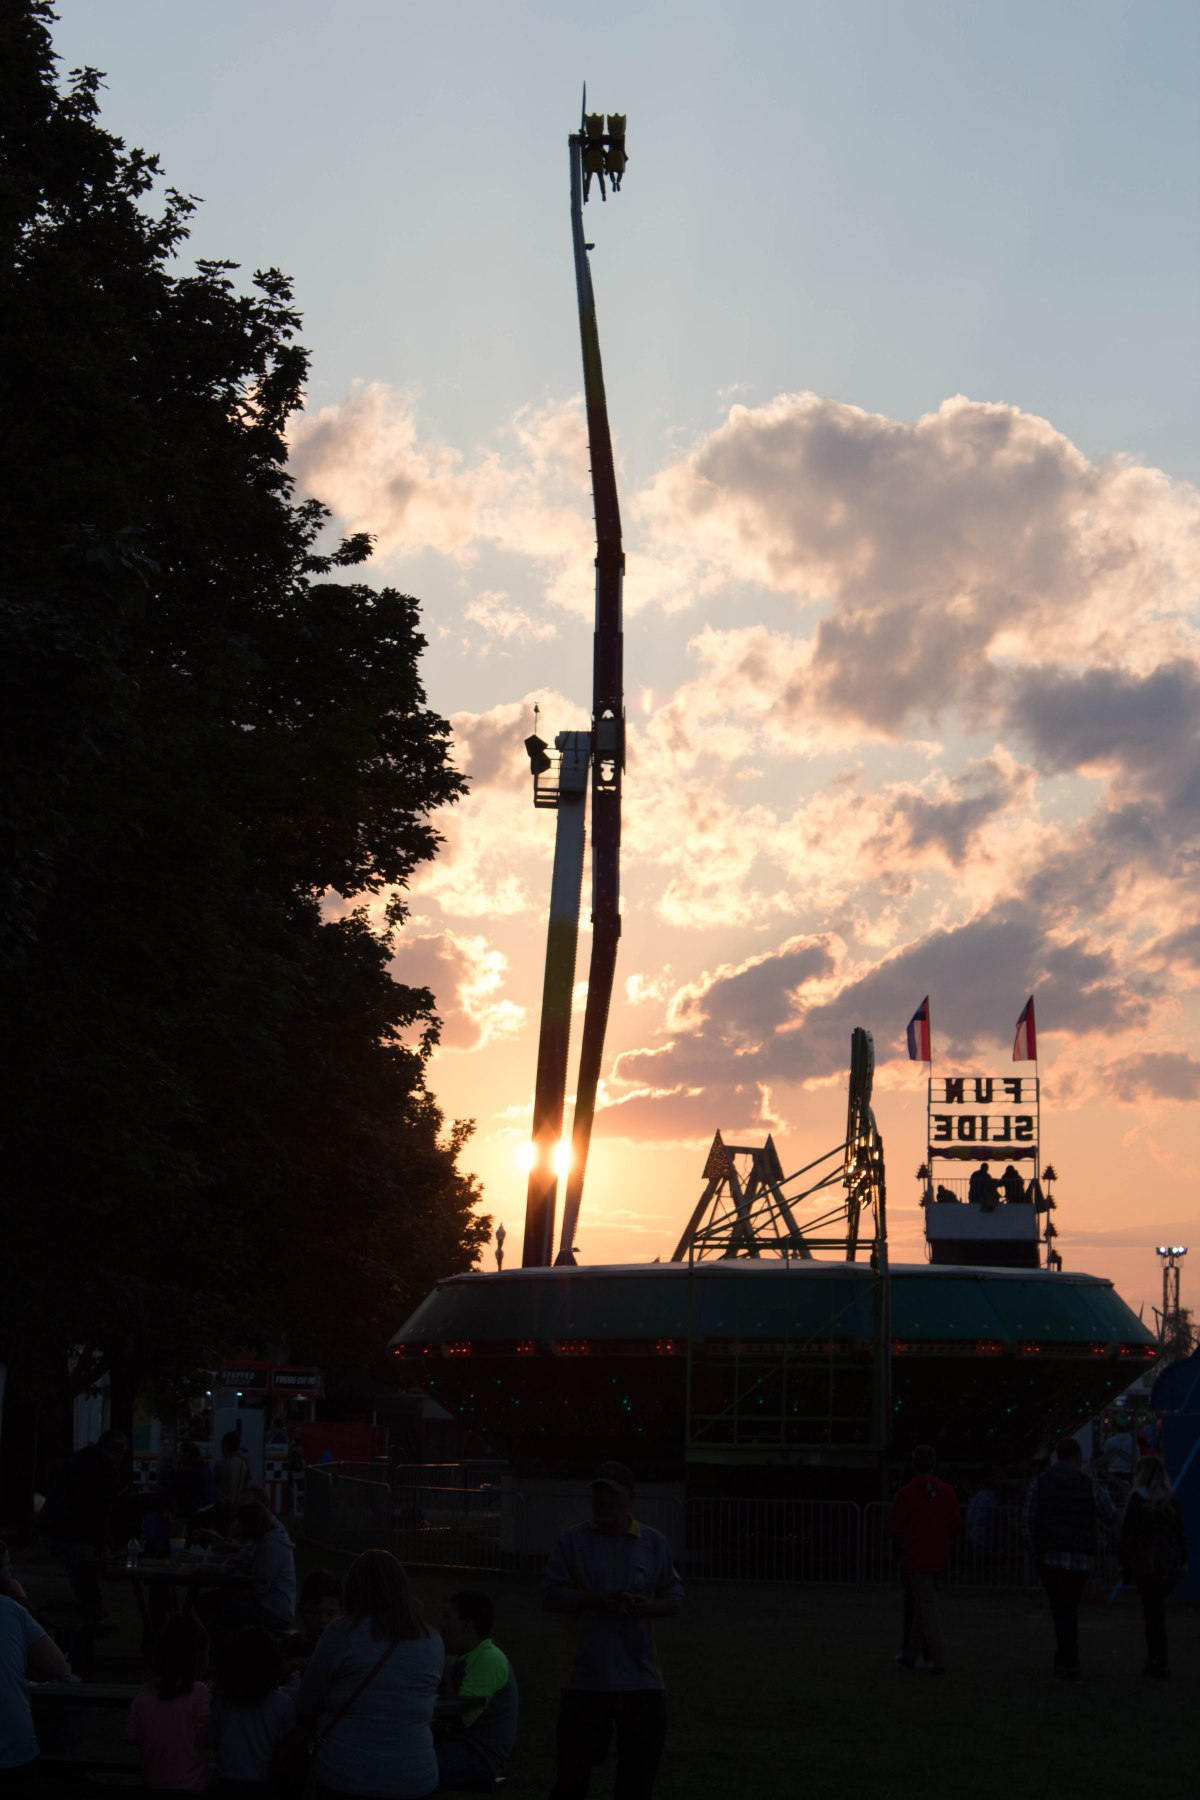 Sunset at State Fair (PartTwo)